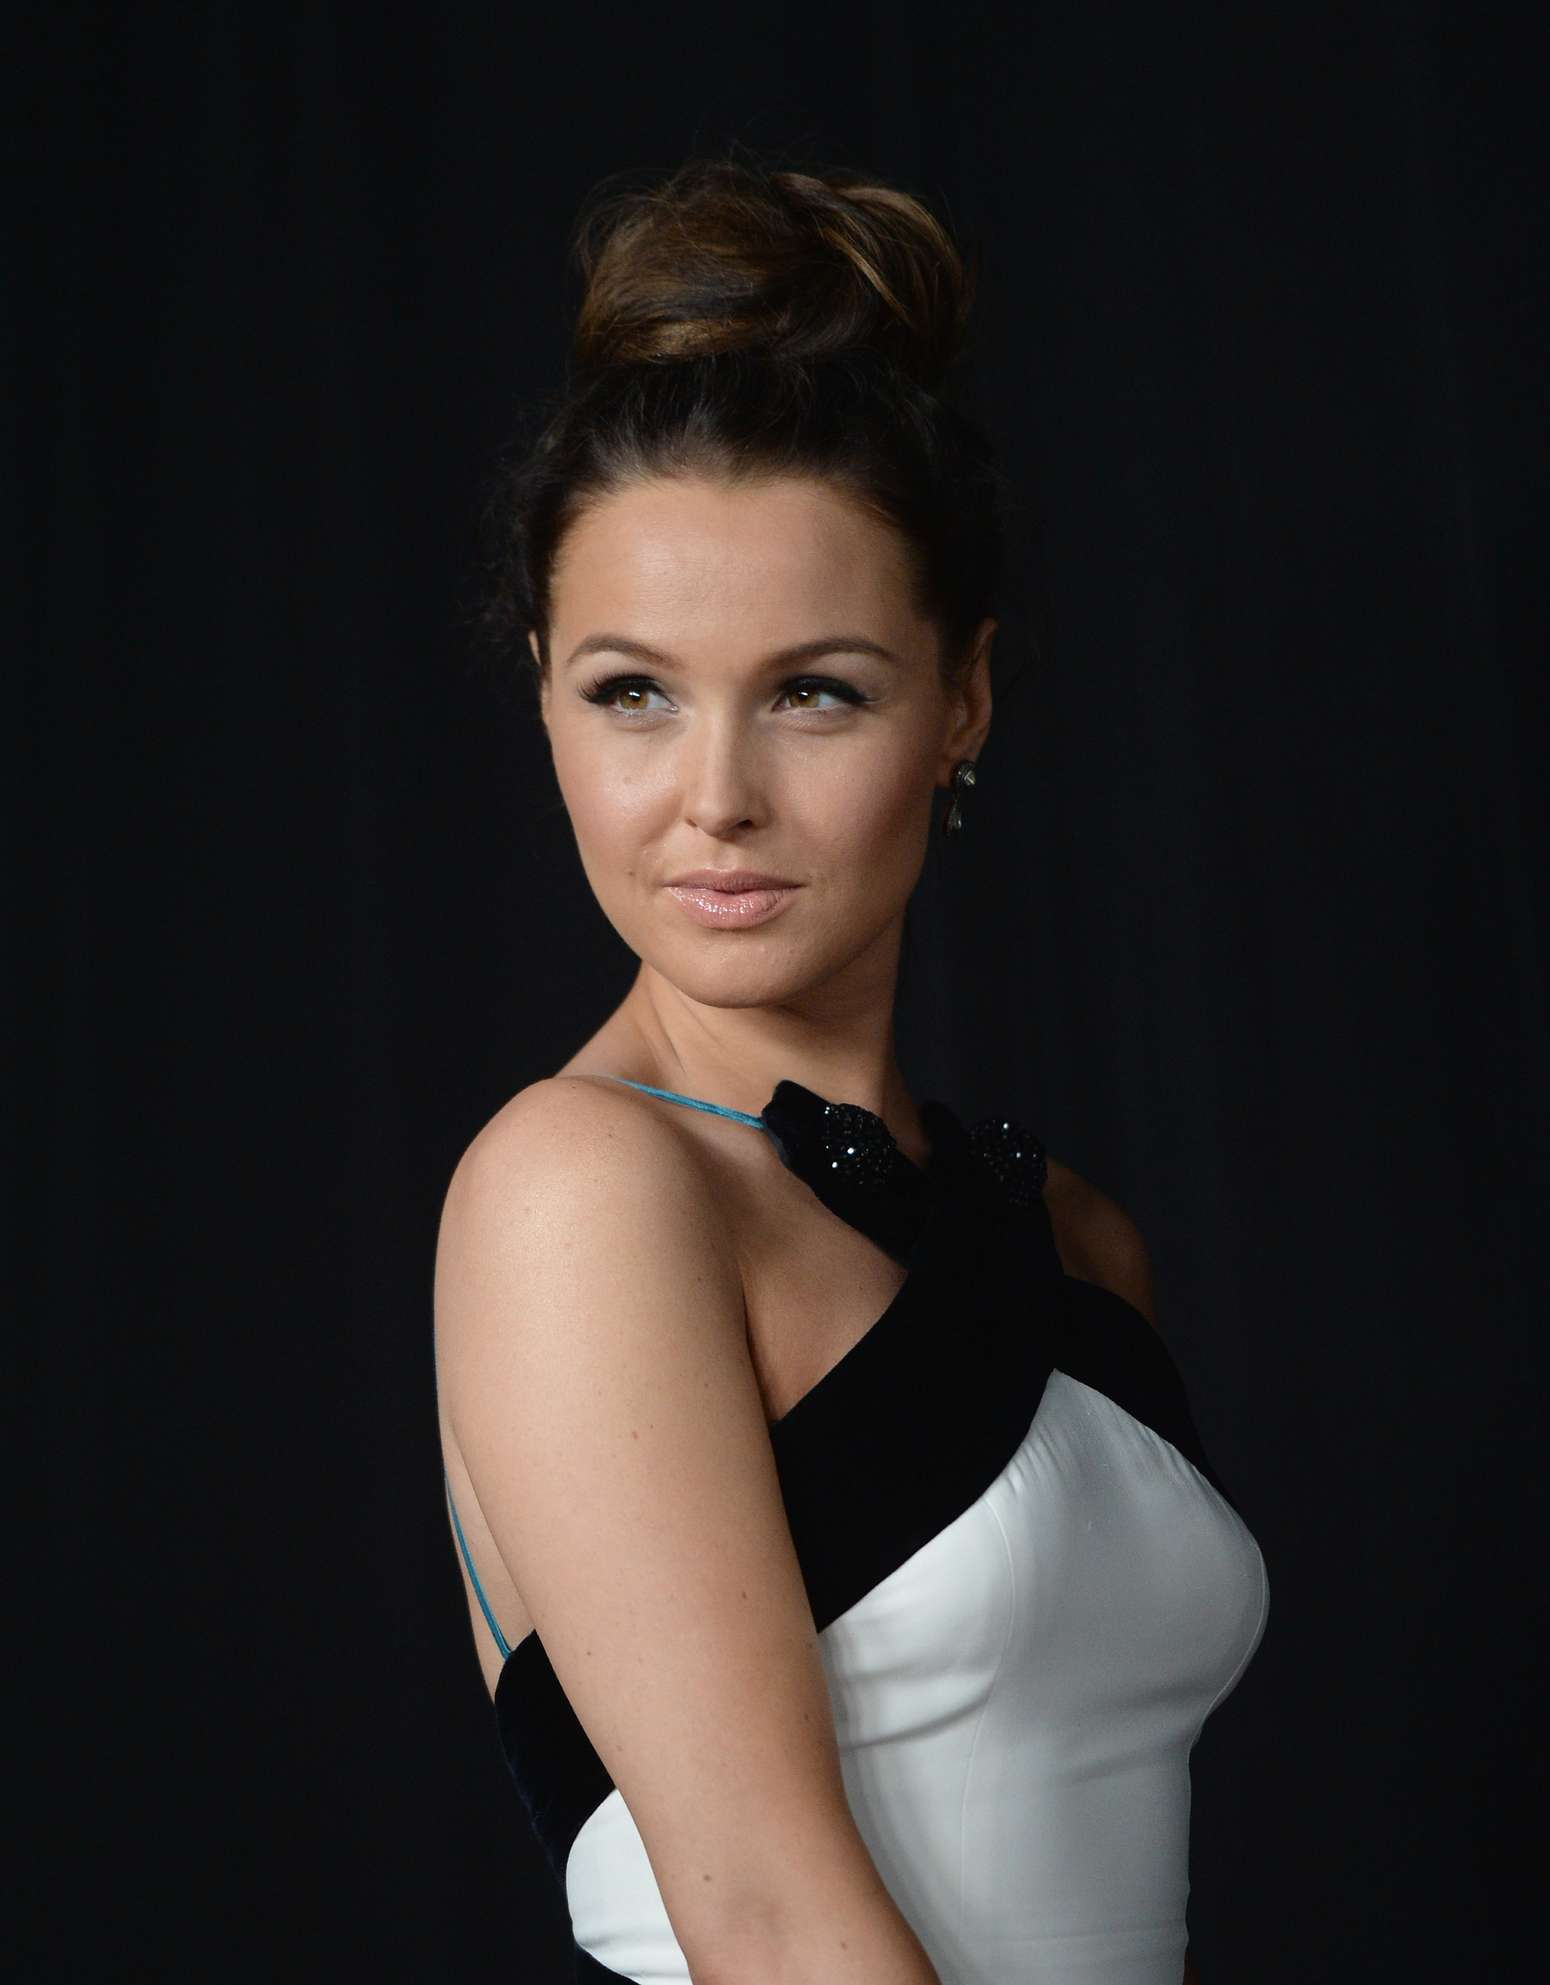 Camilla luddington cute pictures